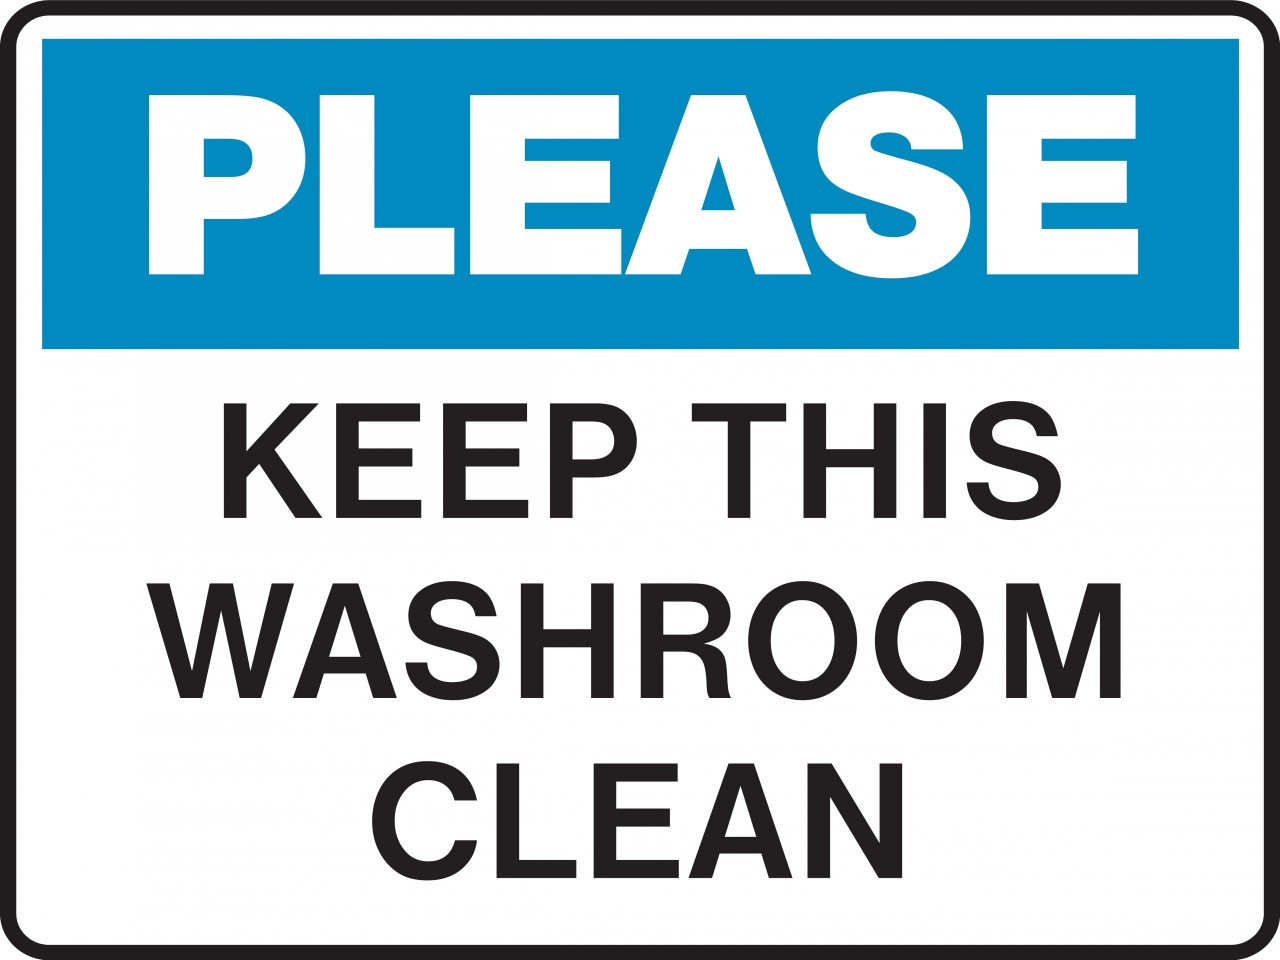 Keep bathroom clean 28 images flush the toilet please for Keep bathroom clean signs